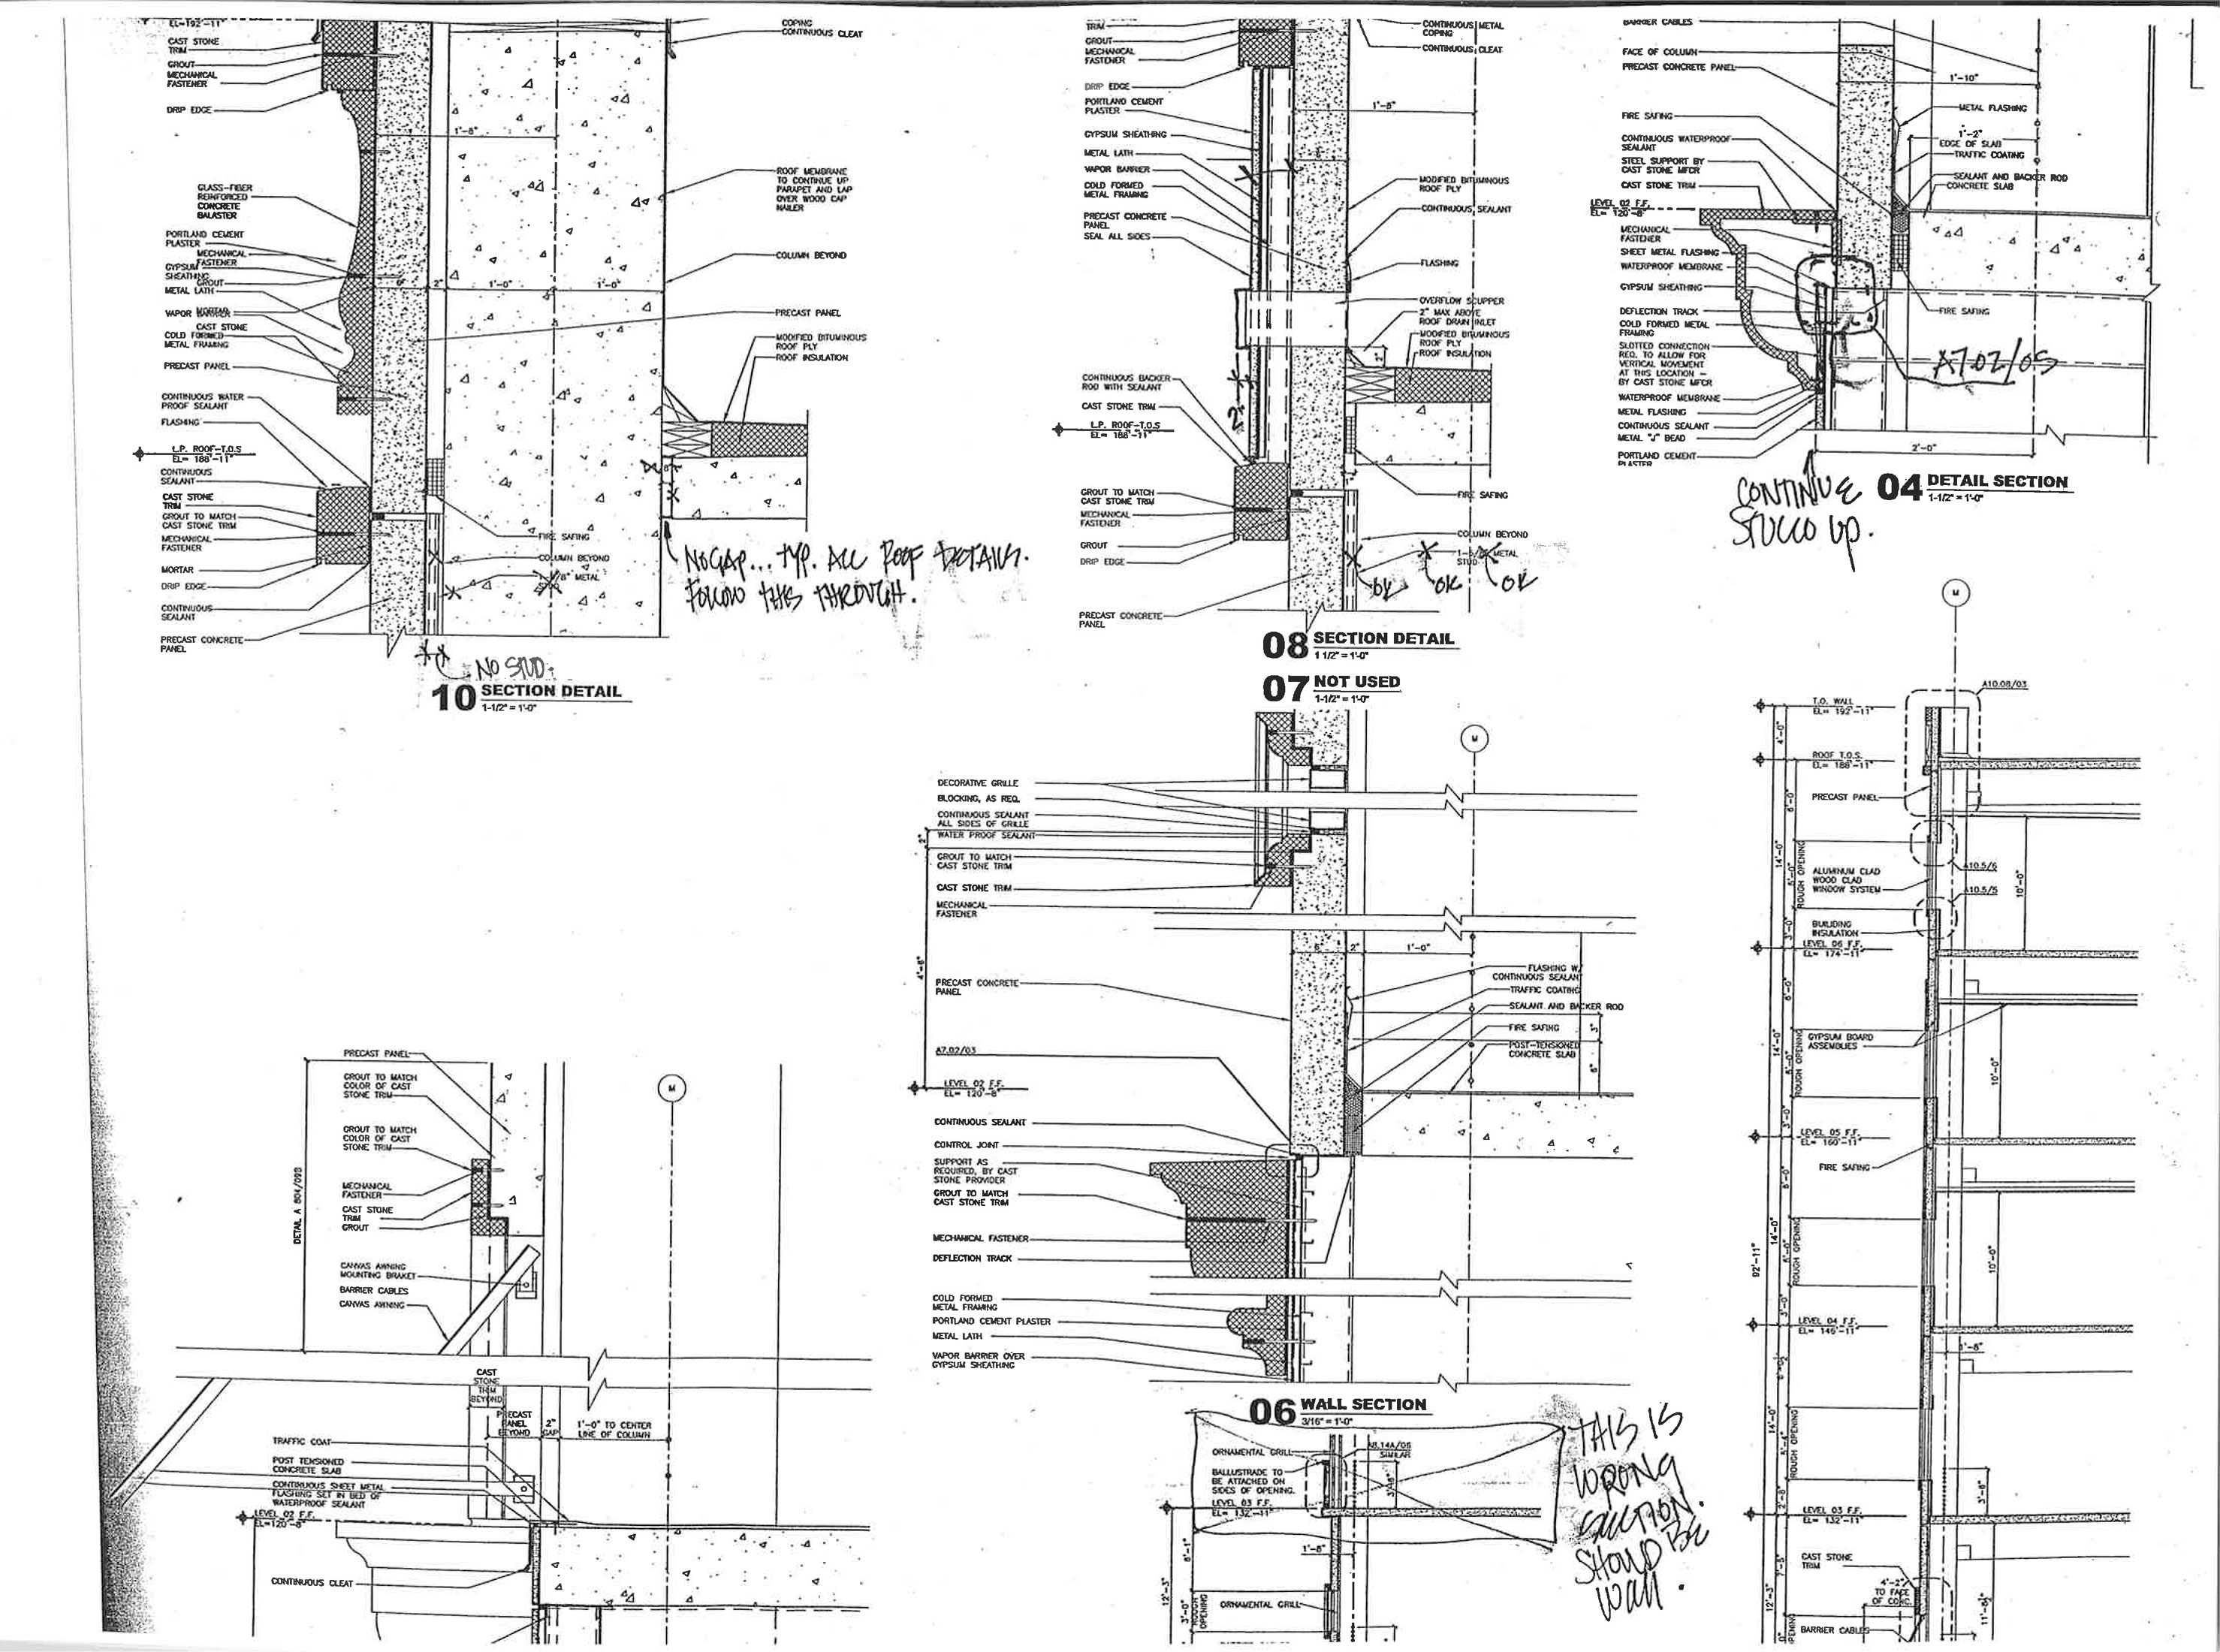 Architectural Screensavers